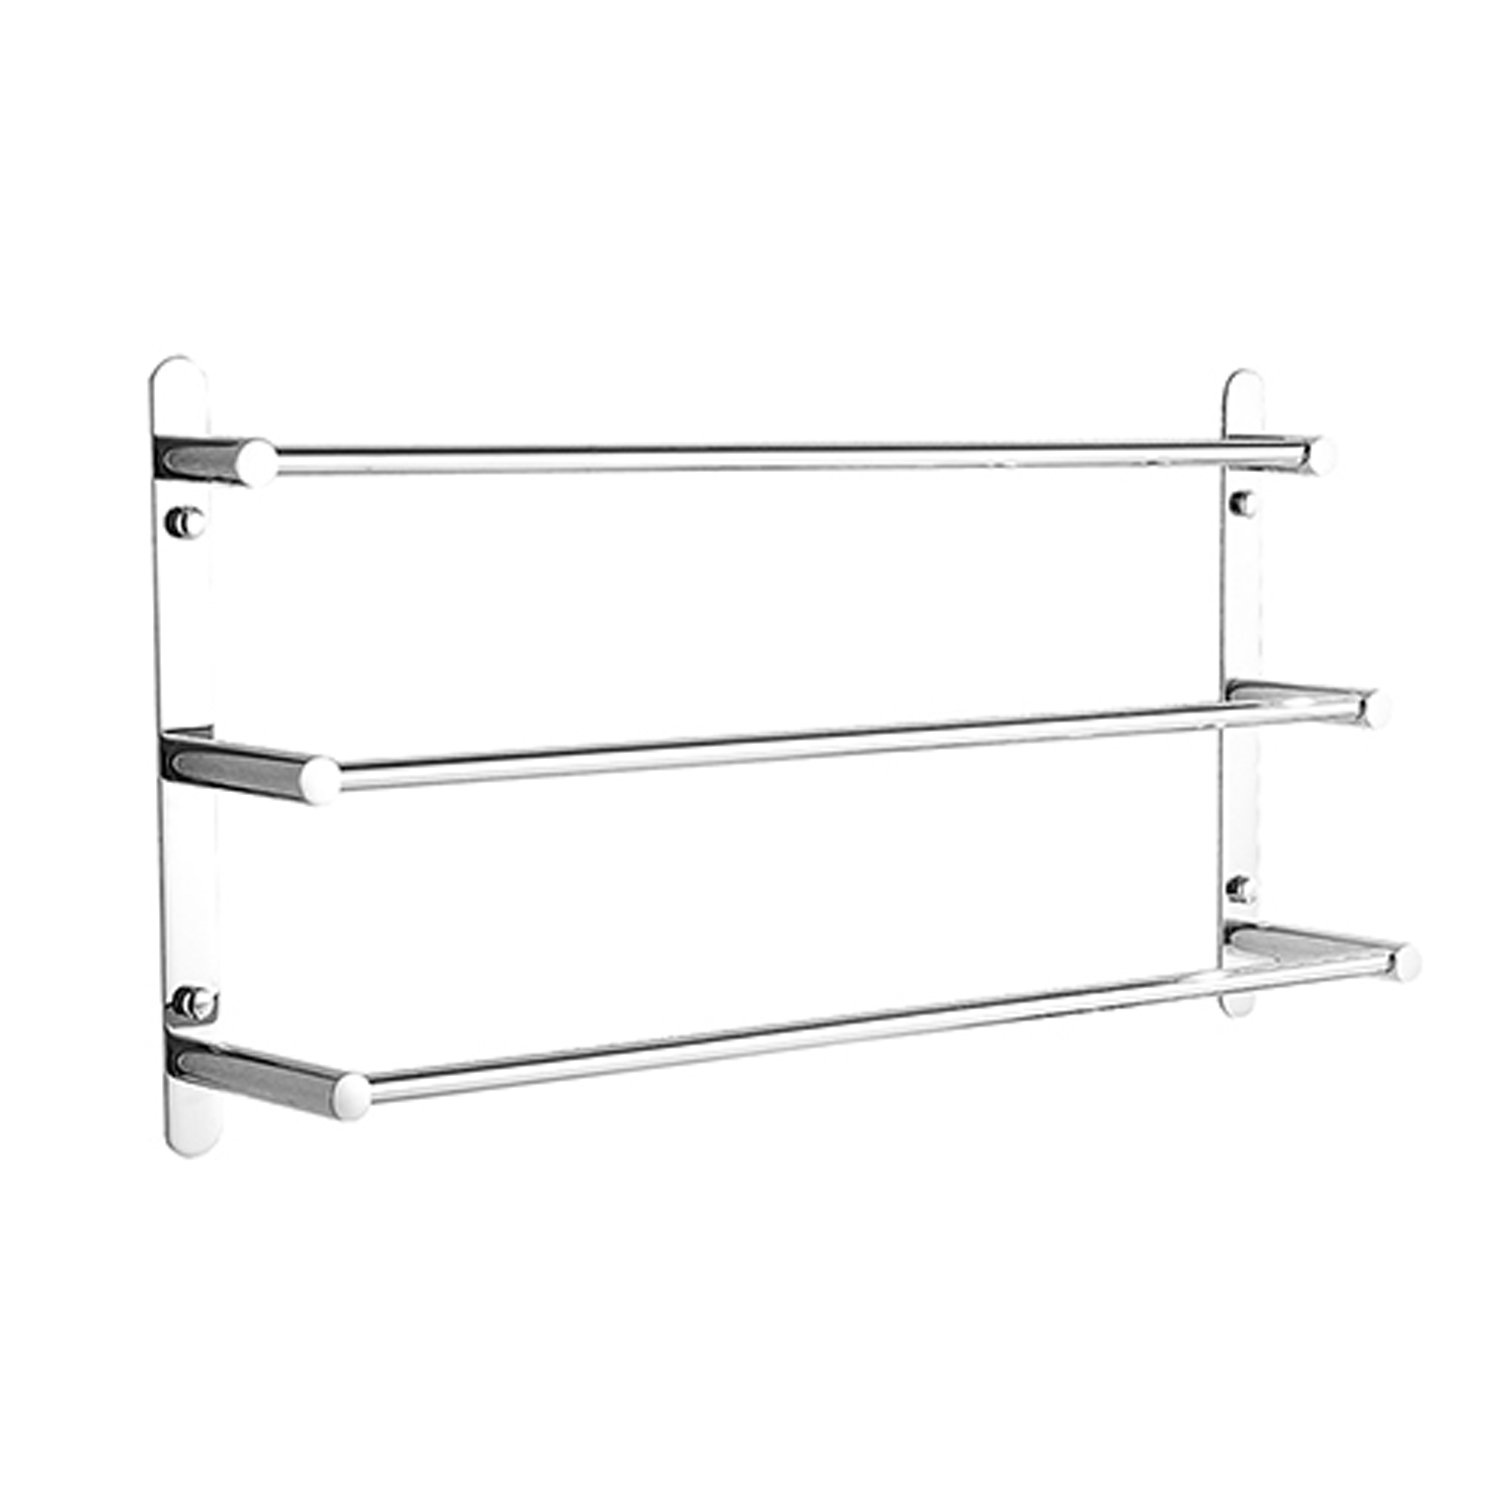 304 Stainless Steel 23.6 Inch Polished Finish Three Towel Bars Towel Rack Luxrmoon